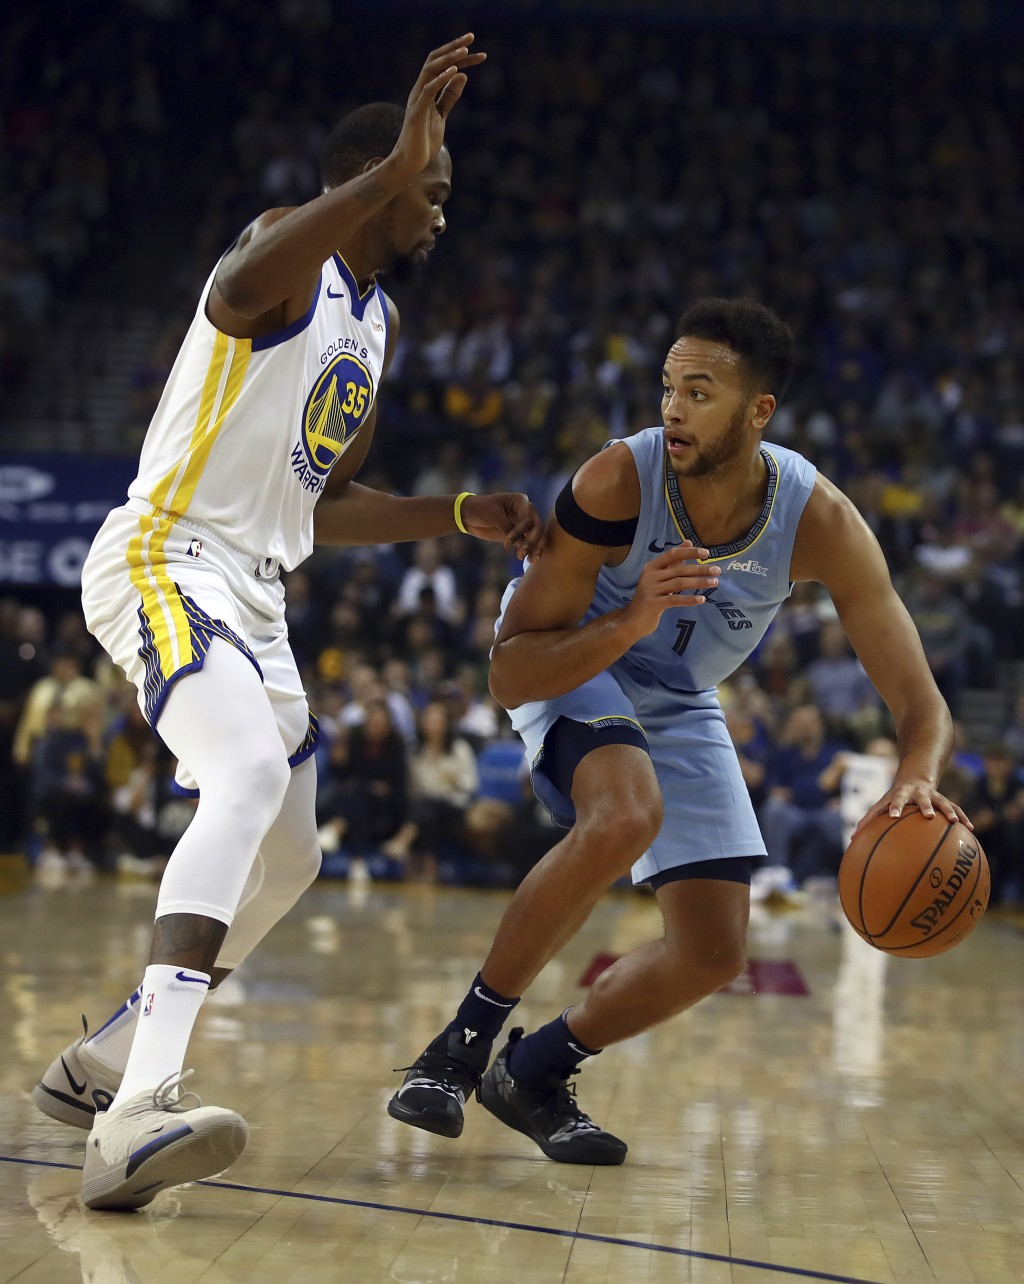 Memphis Grizzlies' Kyle Anderson, right, drives the ball against Golden State Warriors' Kevin Durant (35) during the first half of an NBA basketball g...